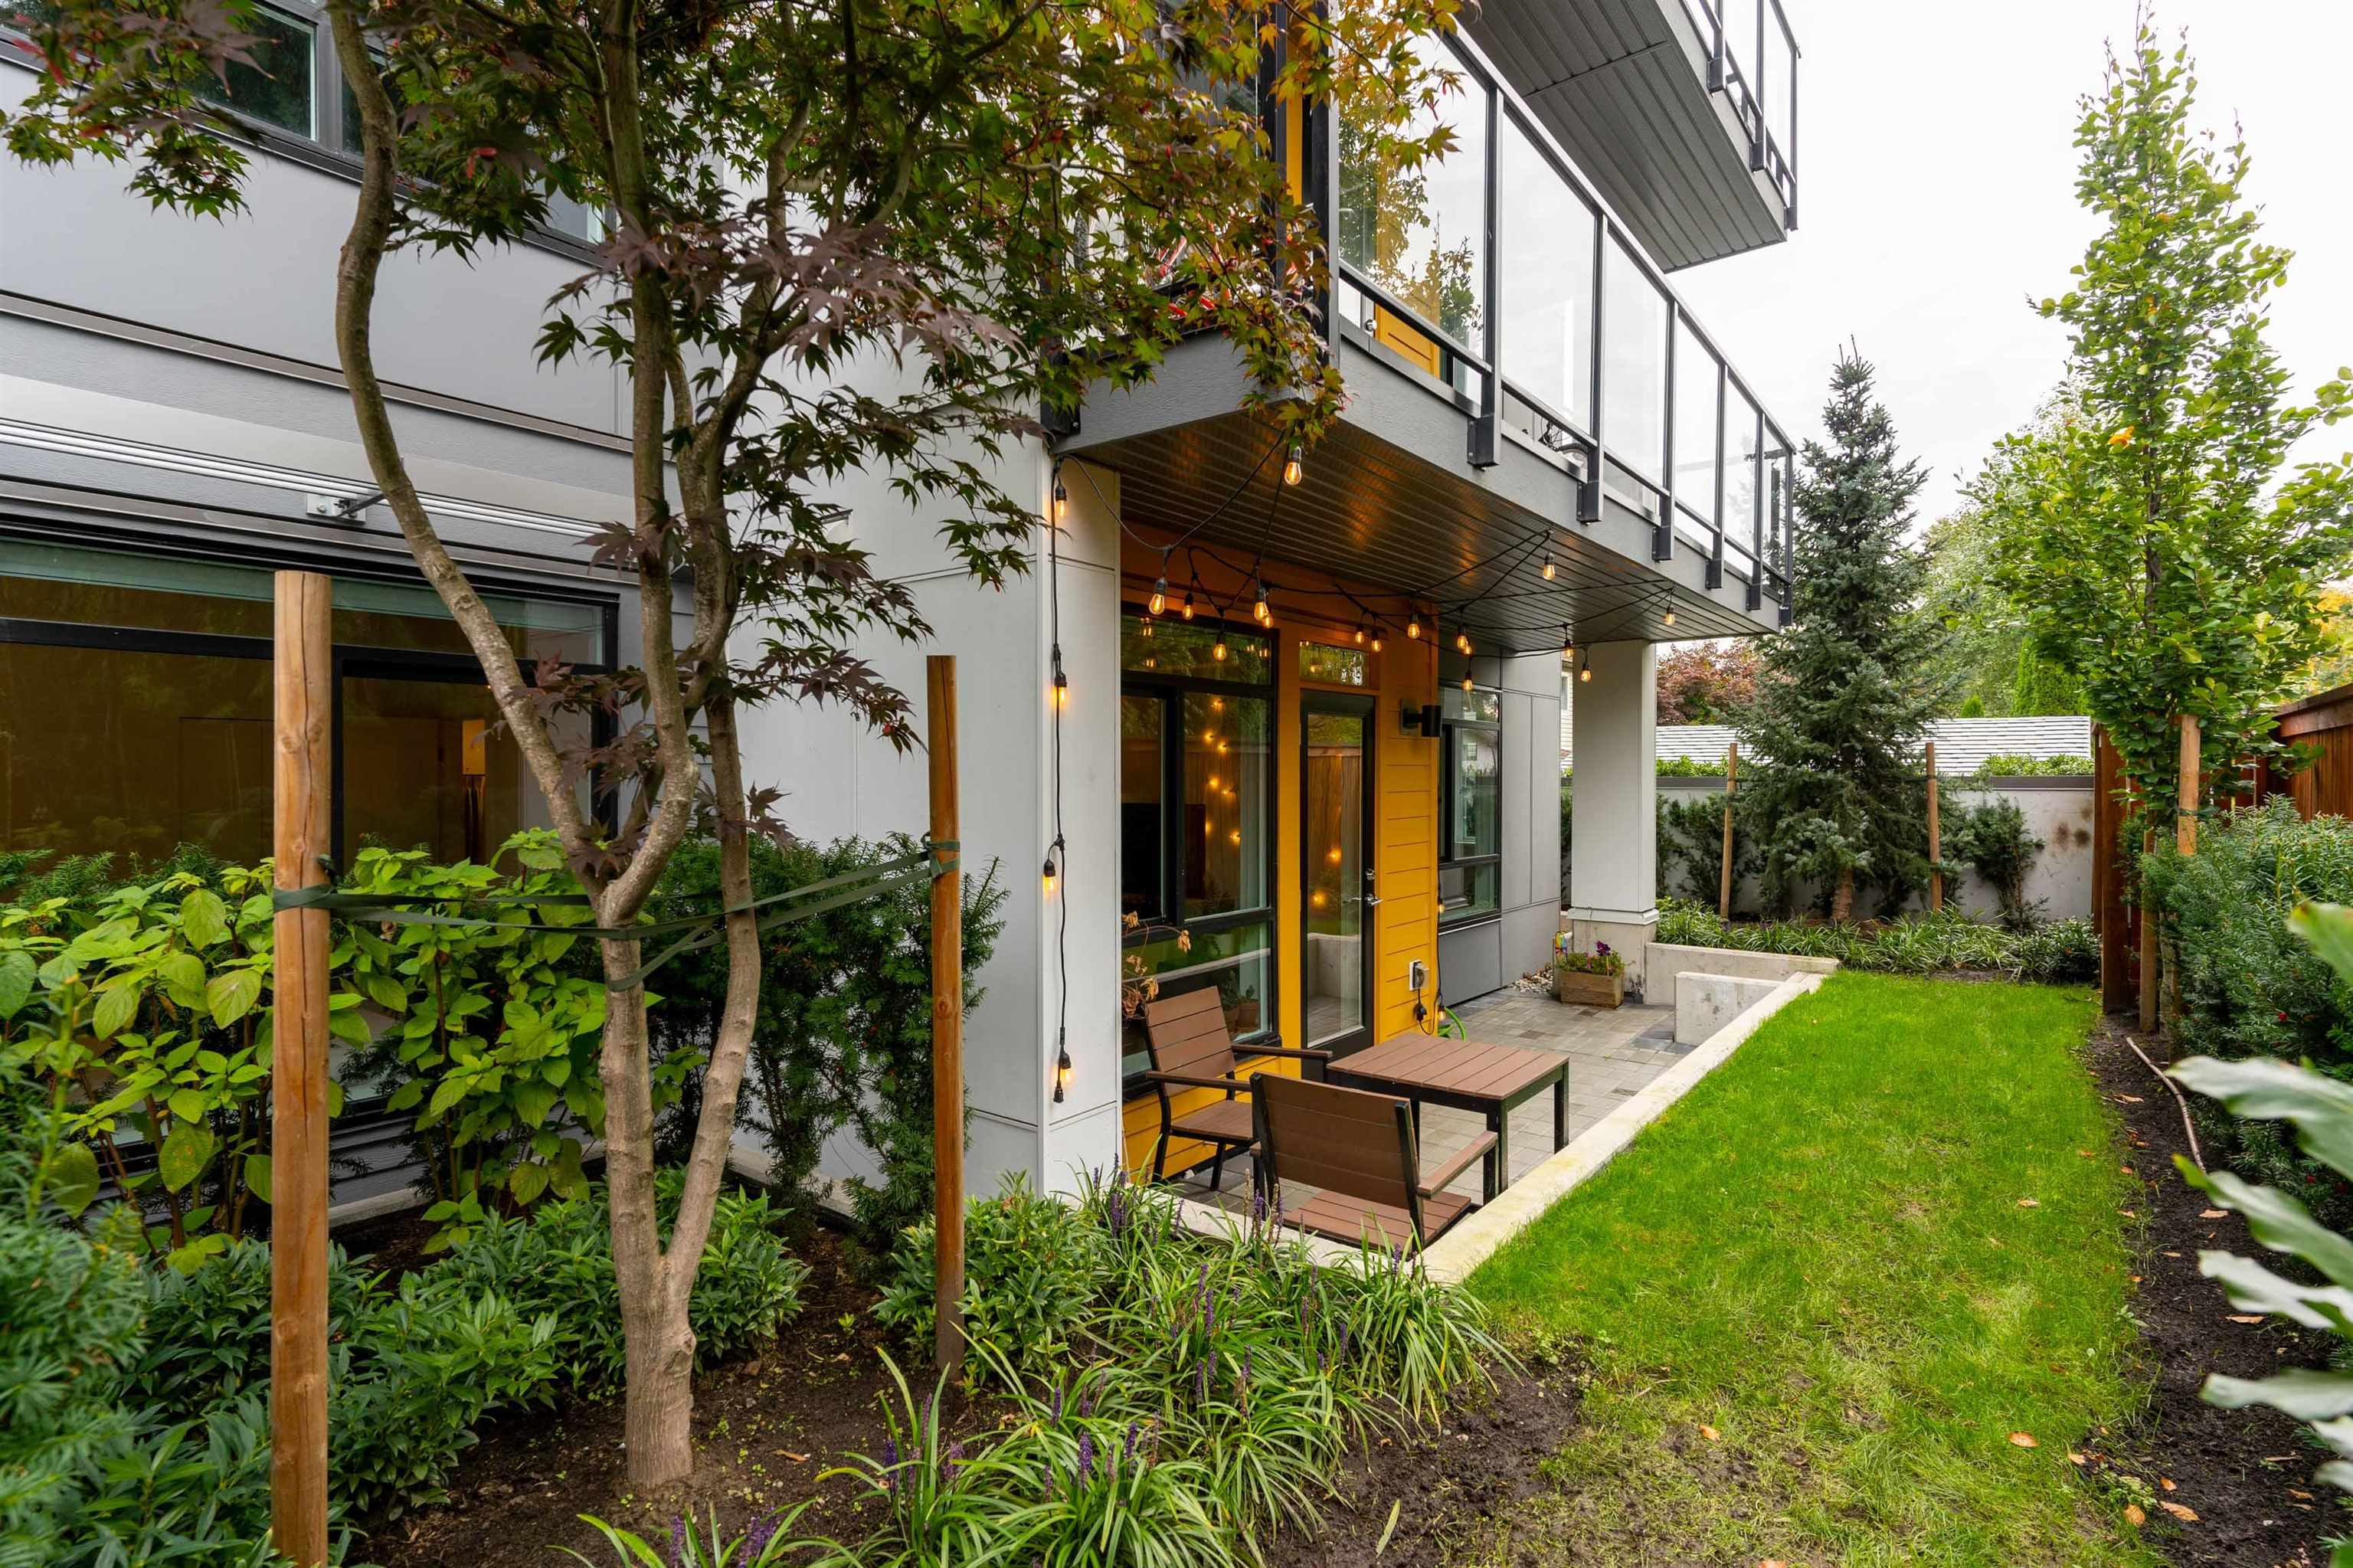 102 1519 CROWN STREET - Lynnmour Apartment/Condo for sale, 3 Bedrooms (R2625295) - #20